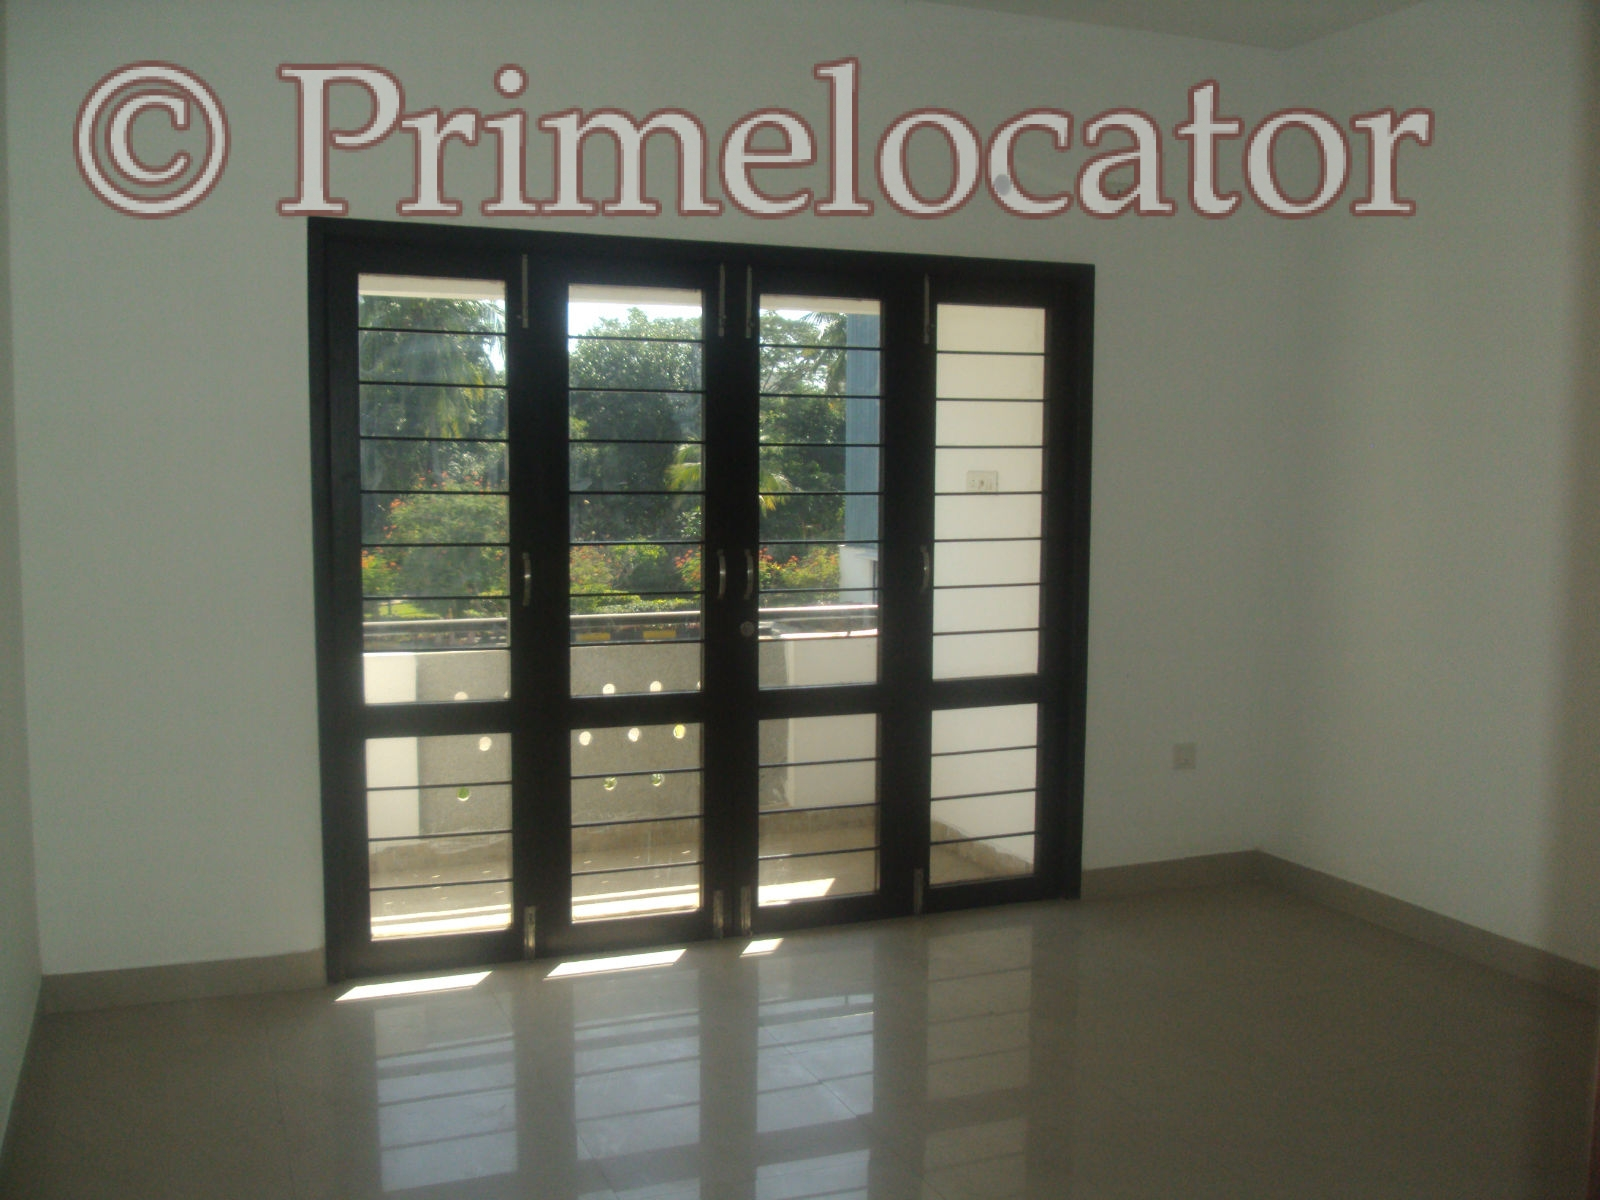 3 Bedroom House For Rent In Chennai 28 Images 2 Bedroom Independent House For Rent In Pakkam